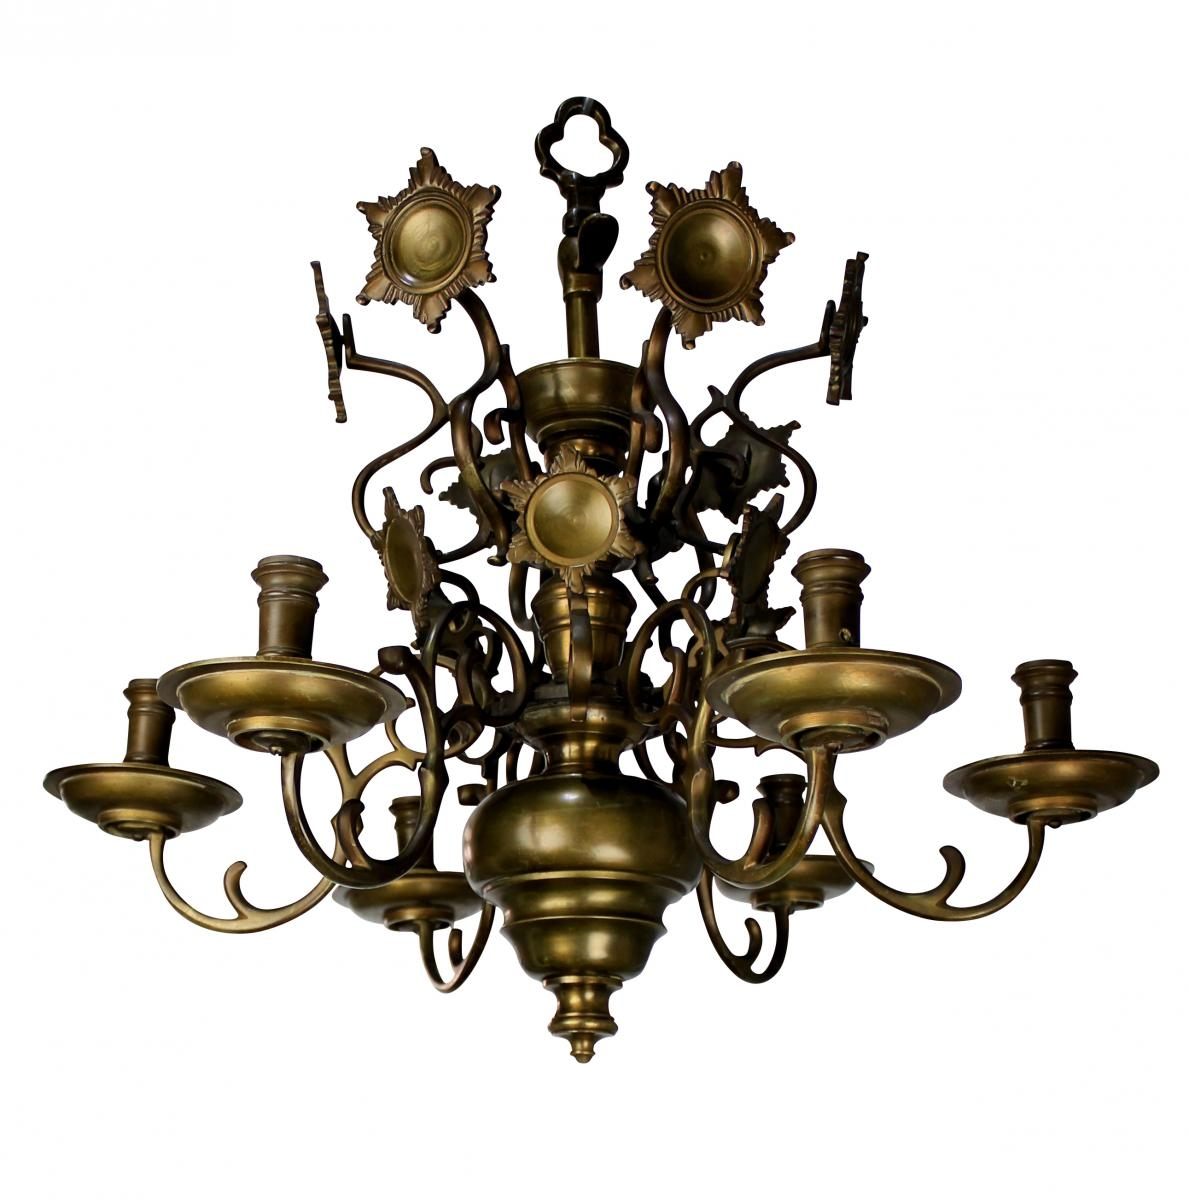 Antique Flemish Brass Chandelier 1840s For Sale At Pamono Inside Flemish Brass Chandeliers (Image 2 of 25)